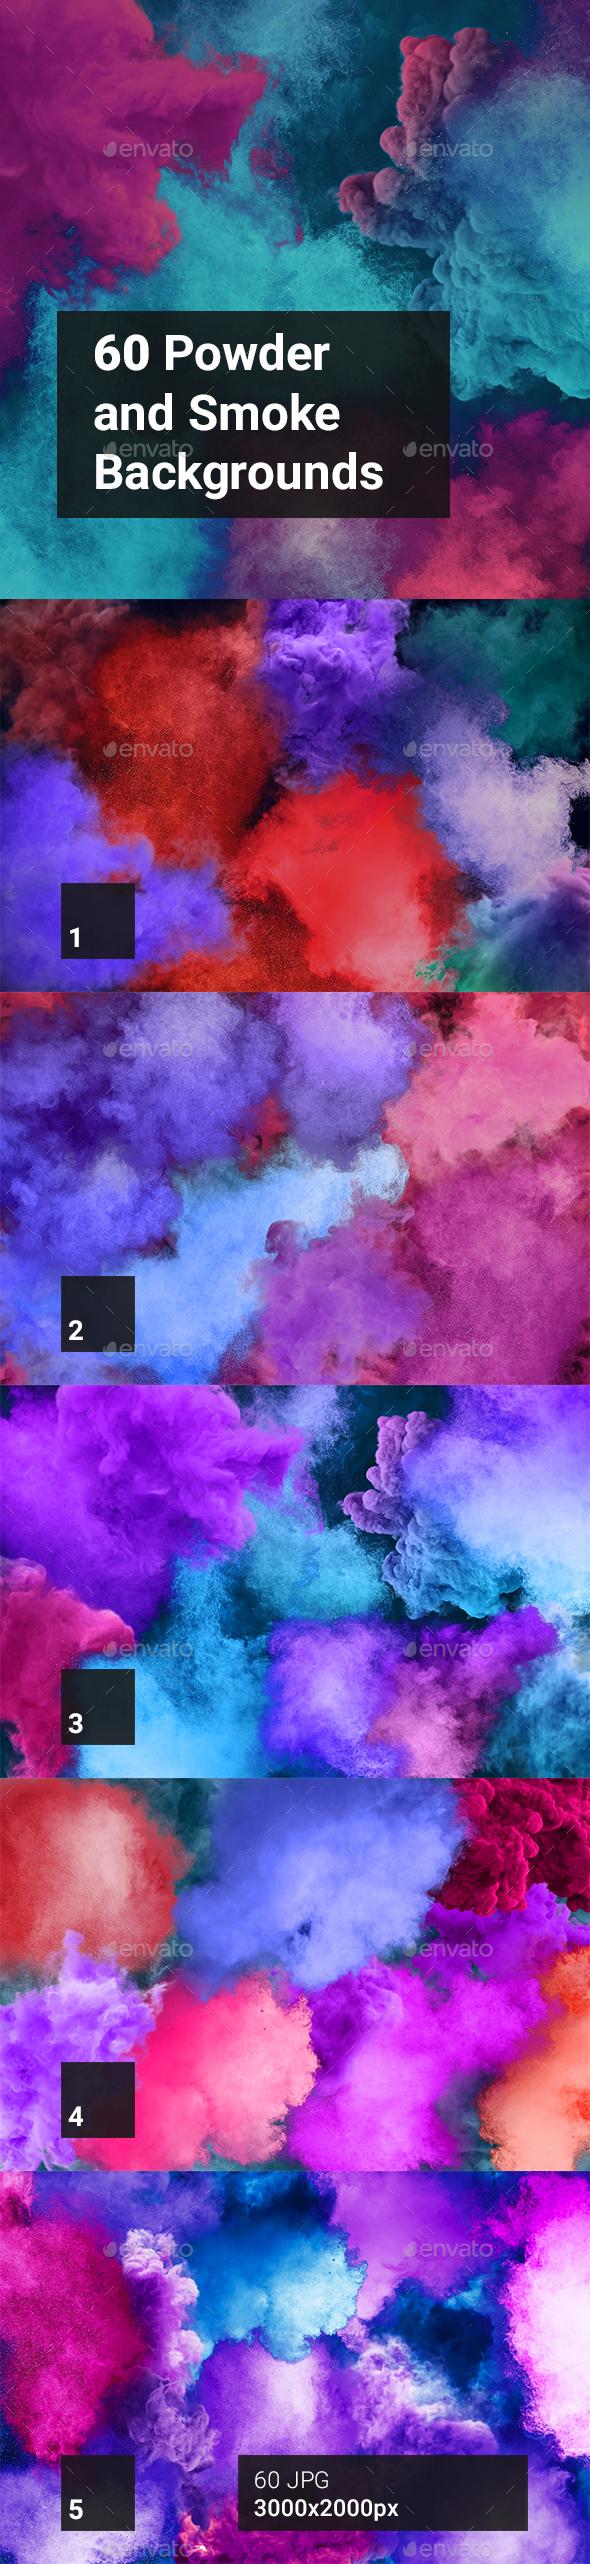 60 Powder And Smoke Backgrounds - Abstract Backgrounds